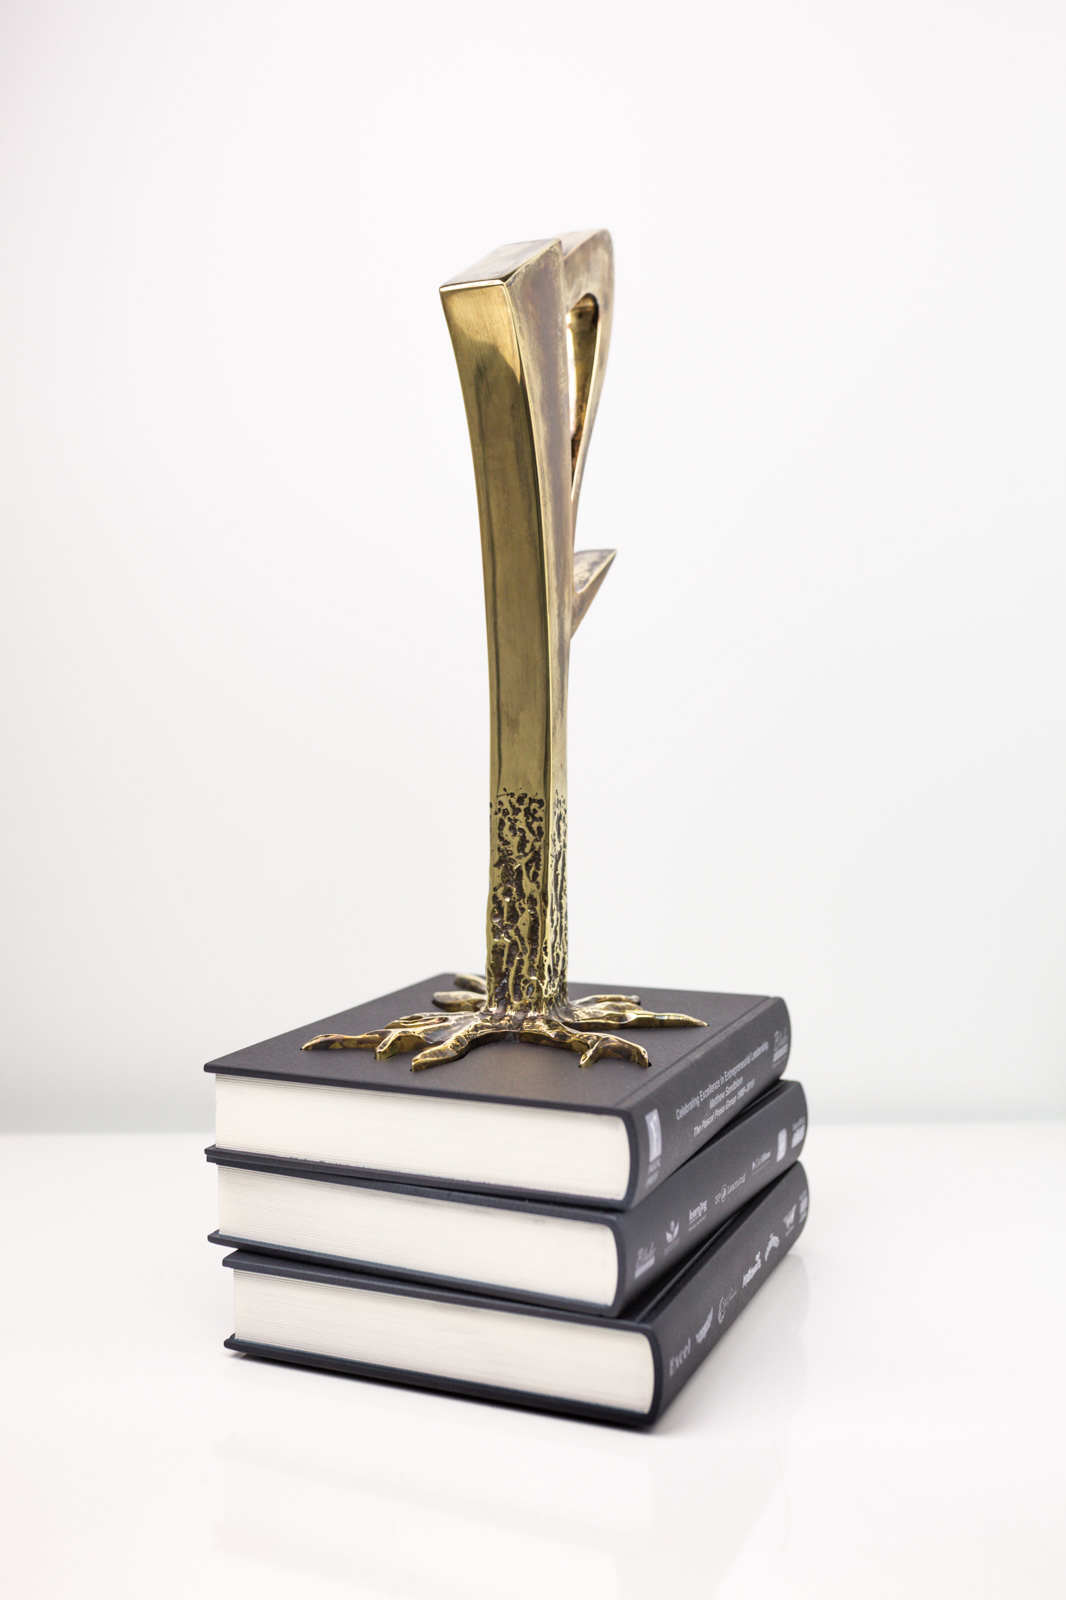 Pascal Press Group Bespoke Trophy - Celebrating Excellence in Entrepreneurial Leadership